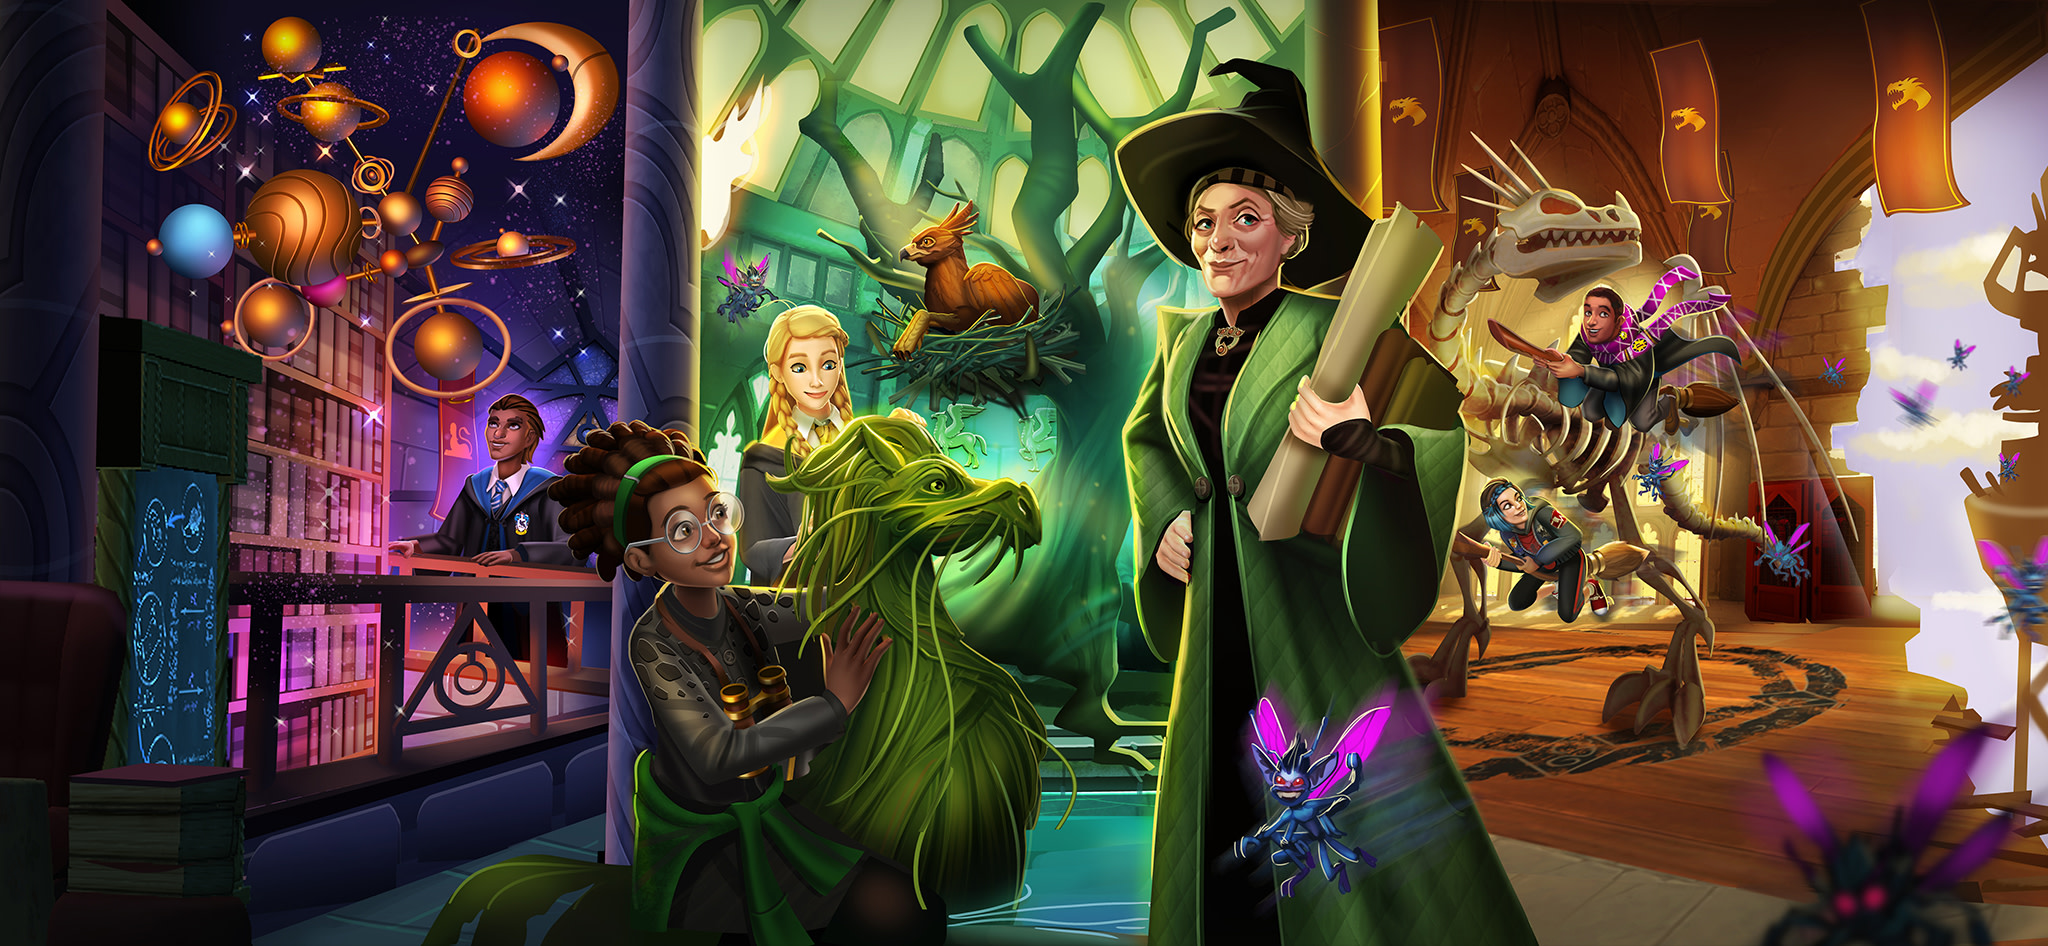 hogwarts-mystery-clubs-feature-mcgonagall-textless-web-hero